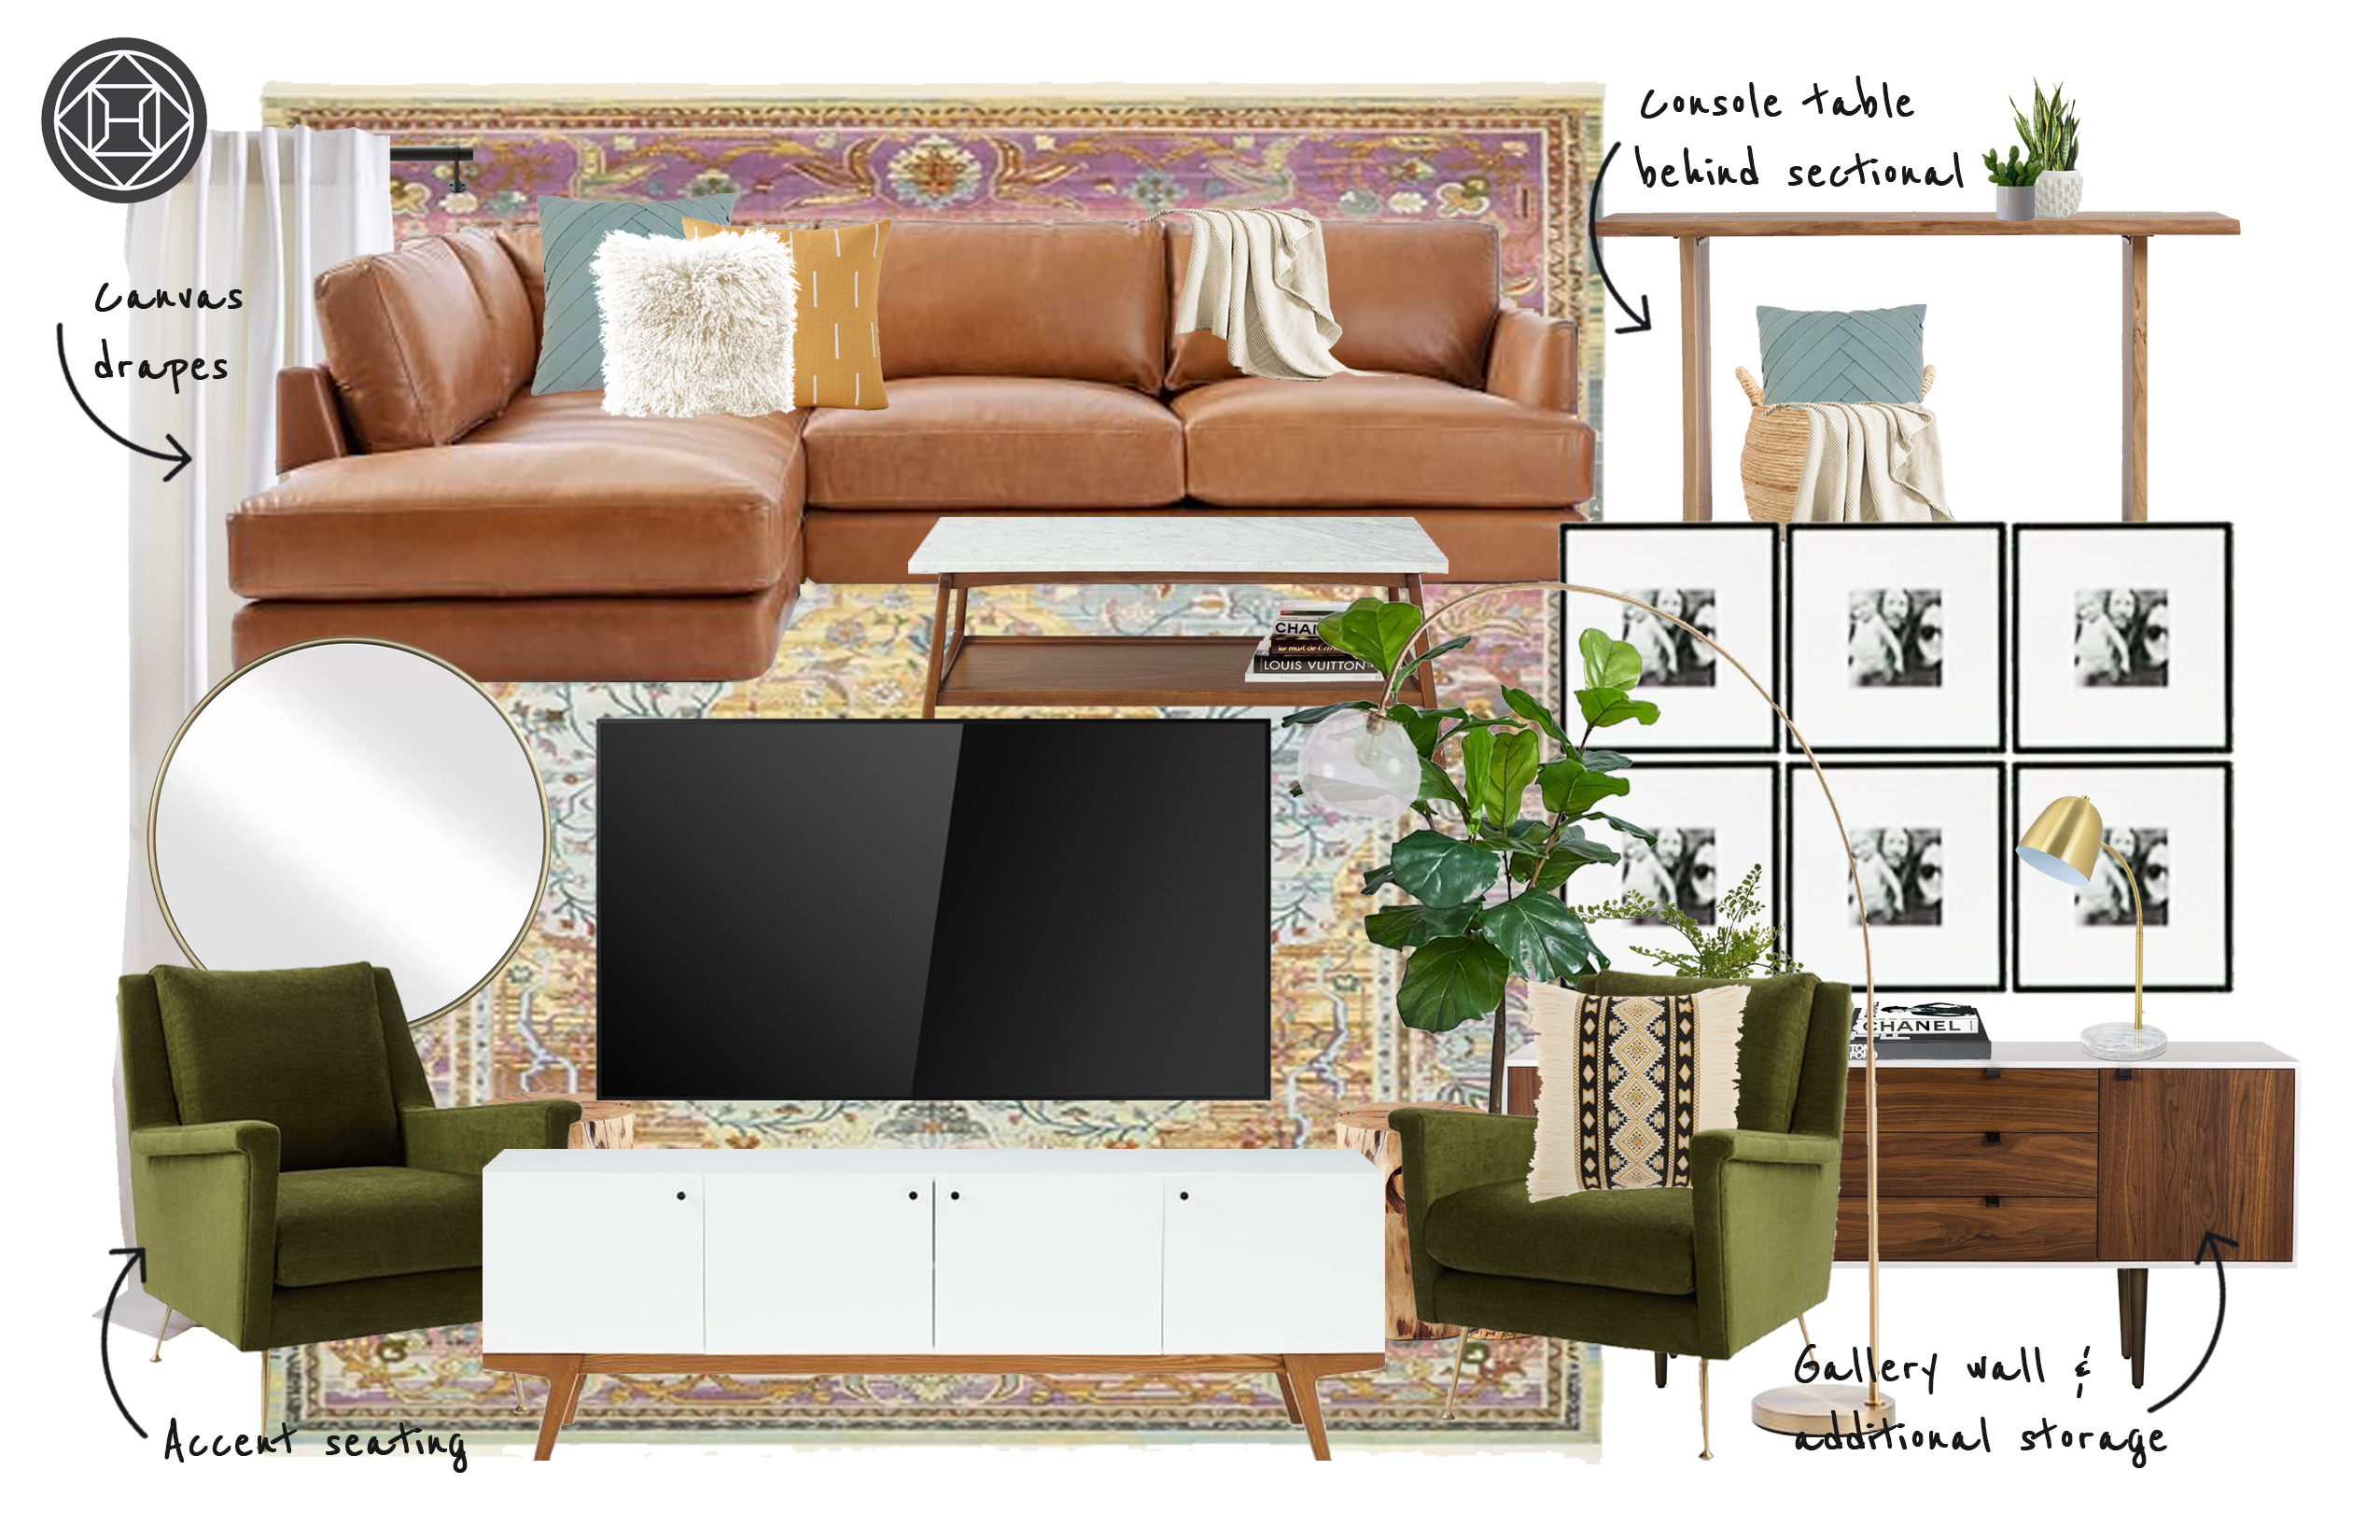 Bohemian Midcentury Modern Living Room Design By Havenly